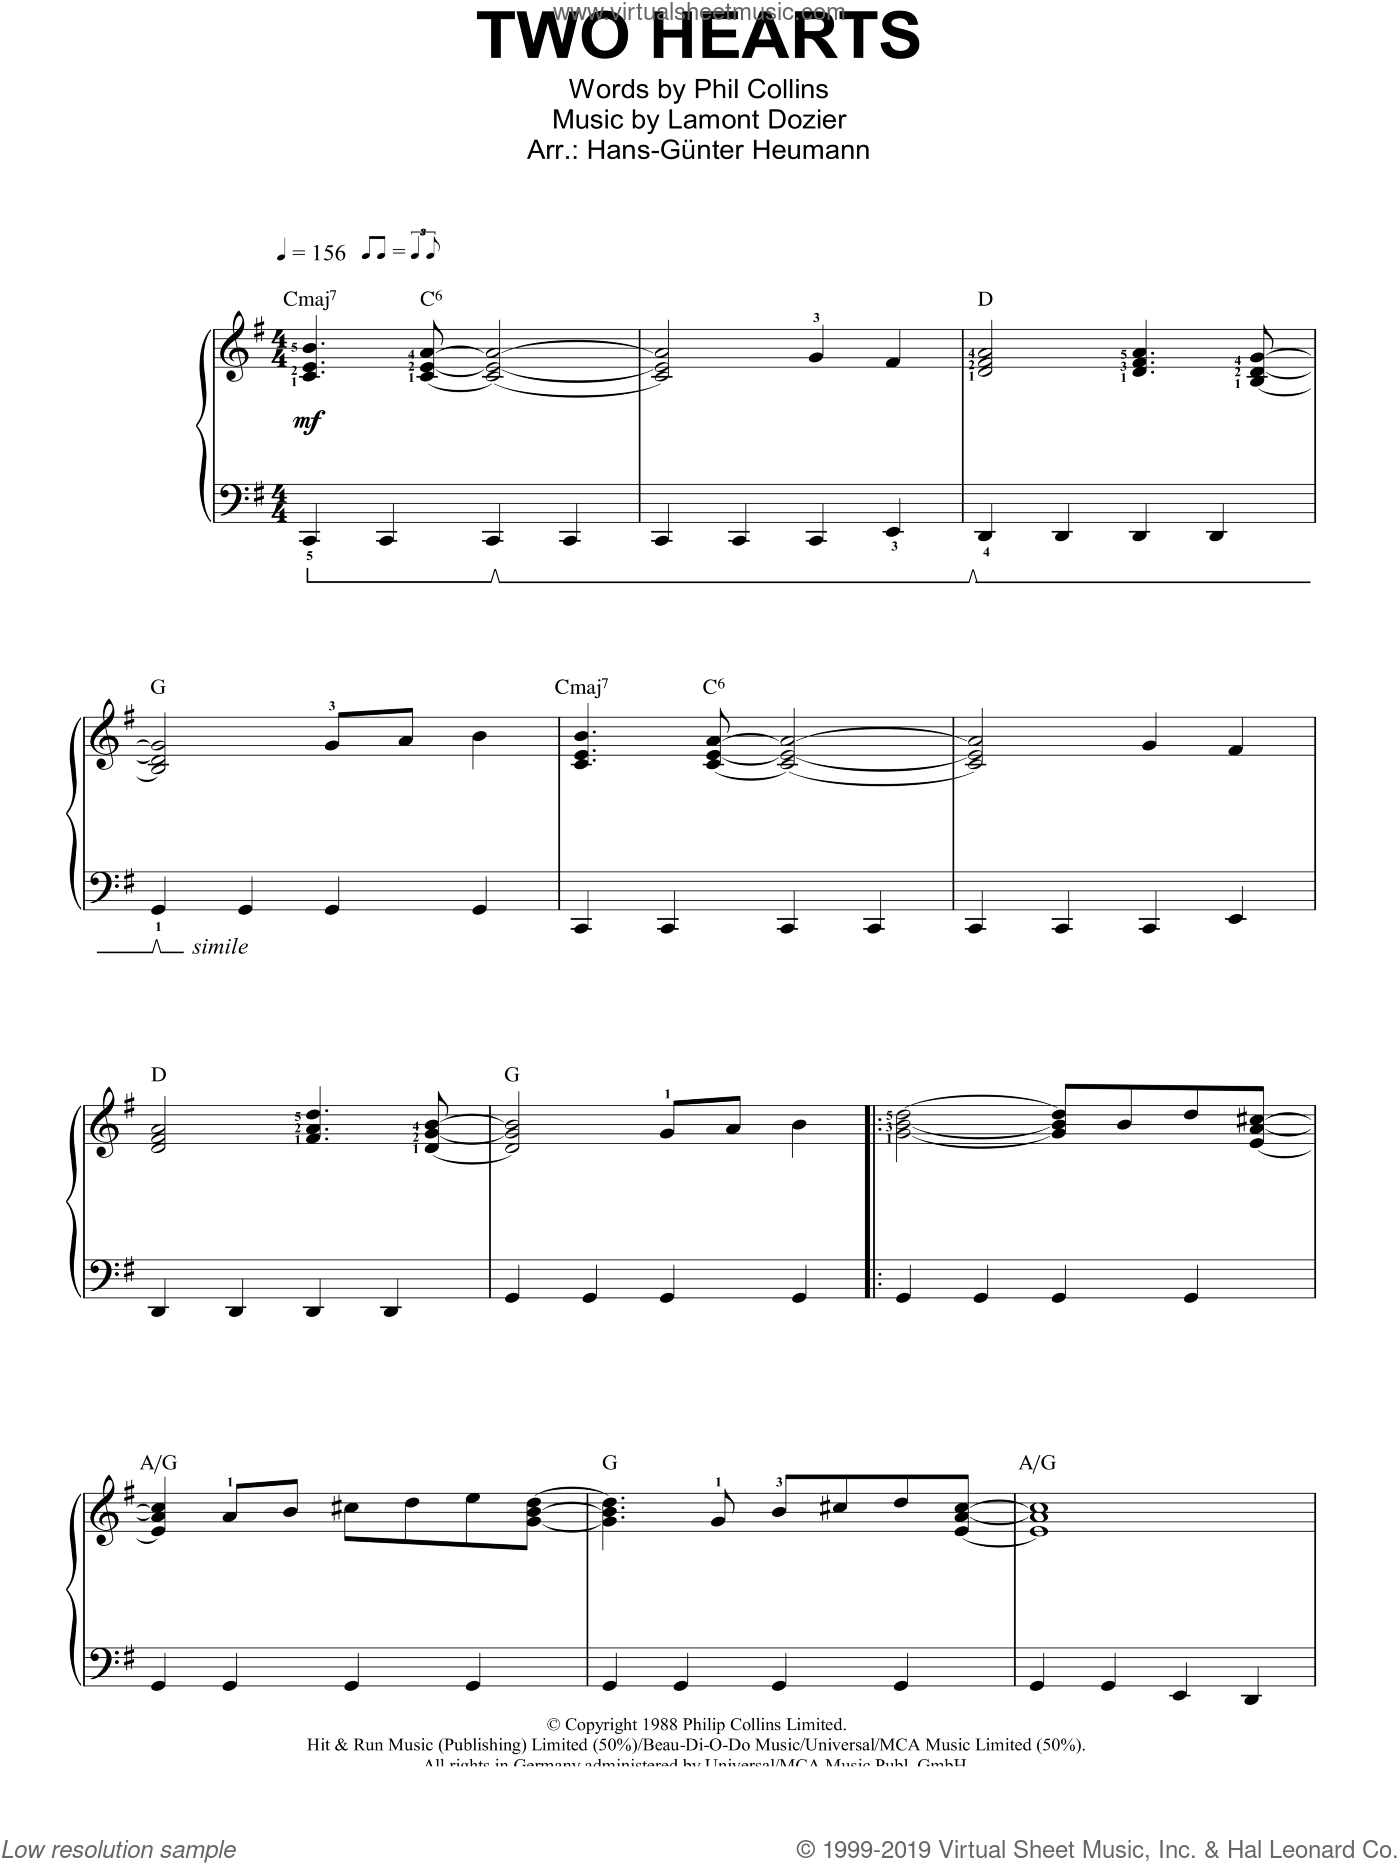 Two Hearts sheet music for piano solo by Phil Collins and Lamont Dozier, easy skill level